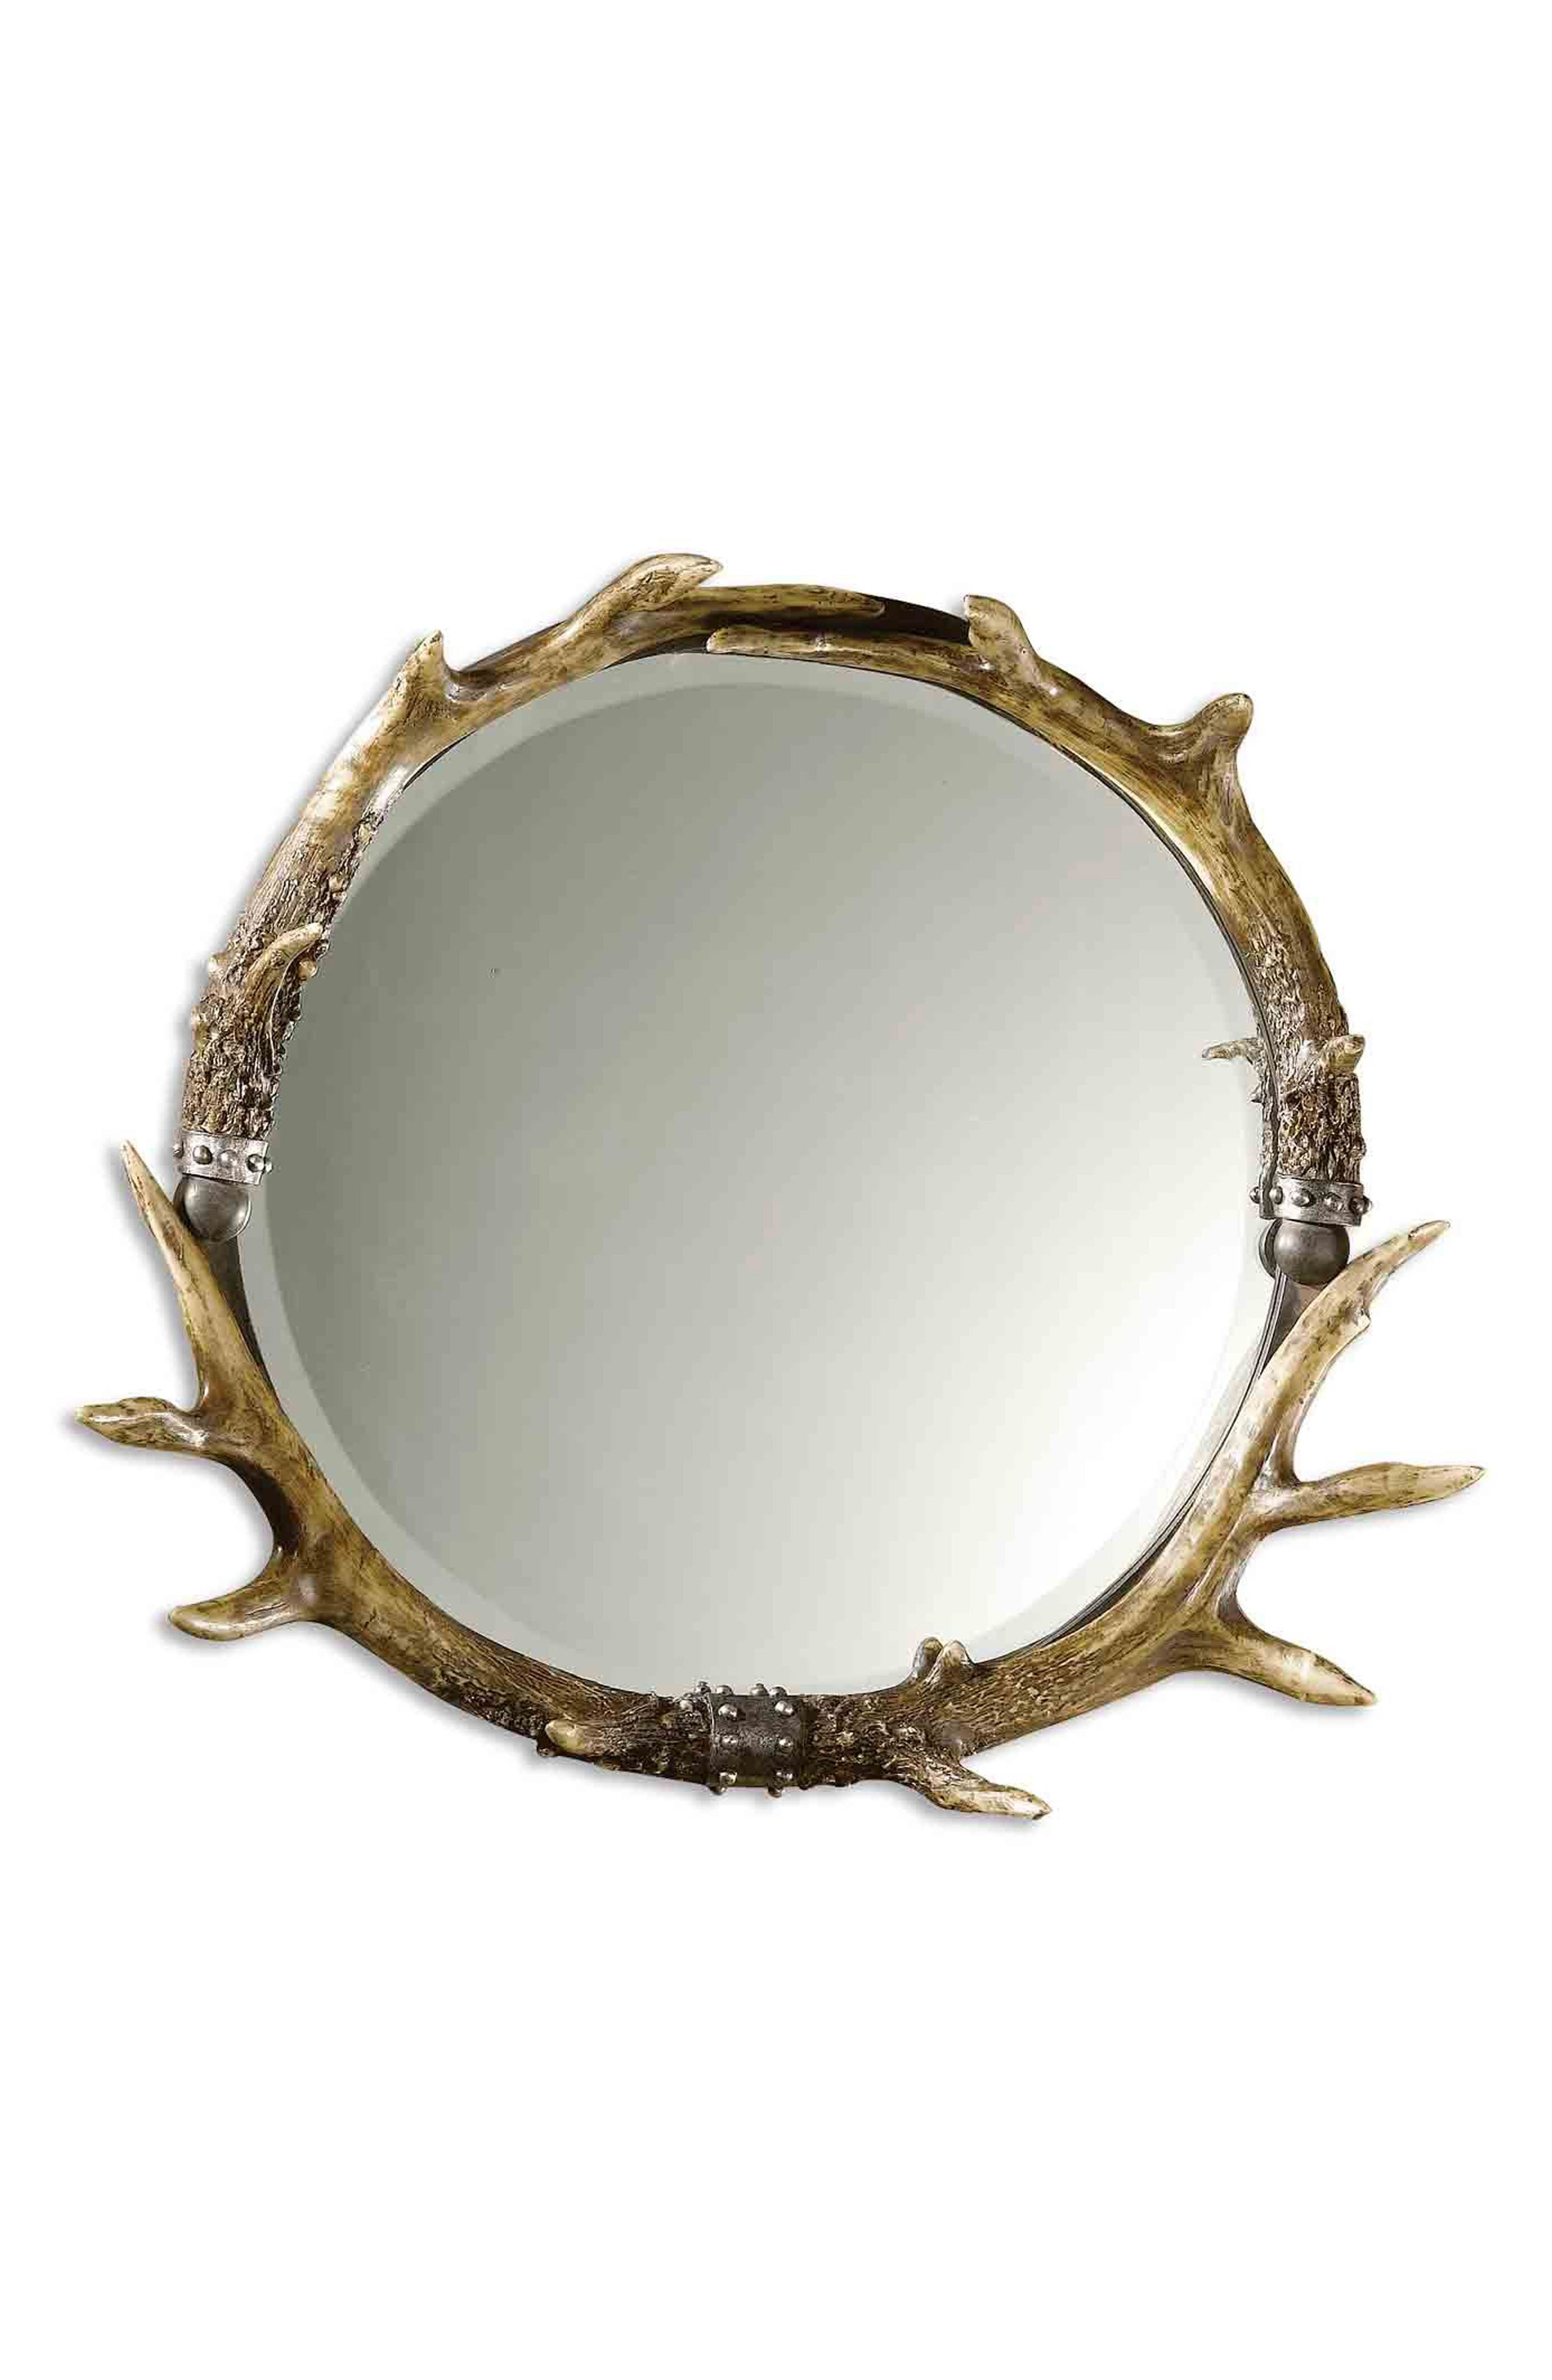 Stag Horn Wall Mirror,                             Main thumbnail 1, color,                             200